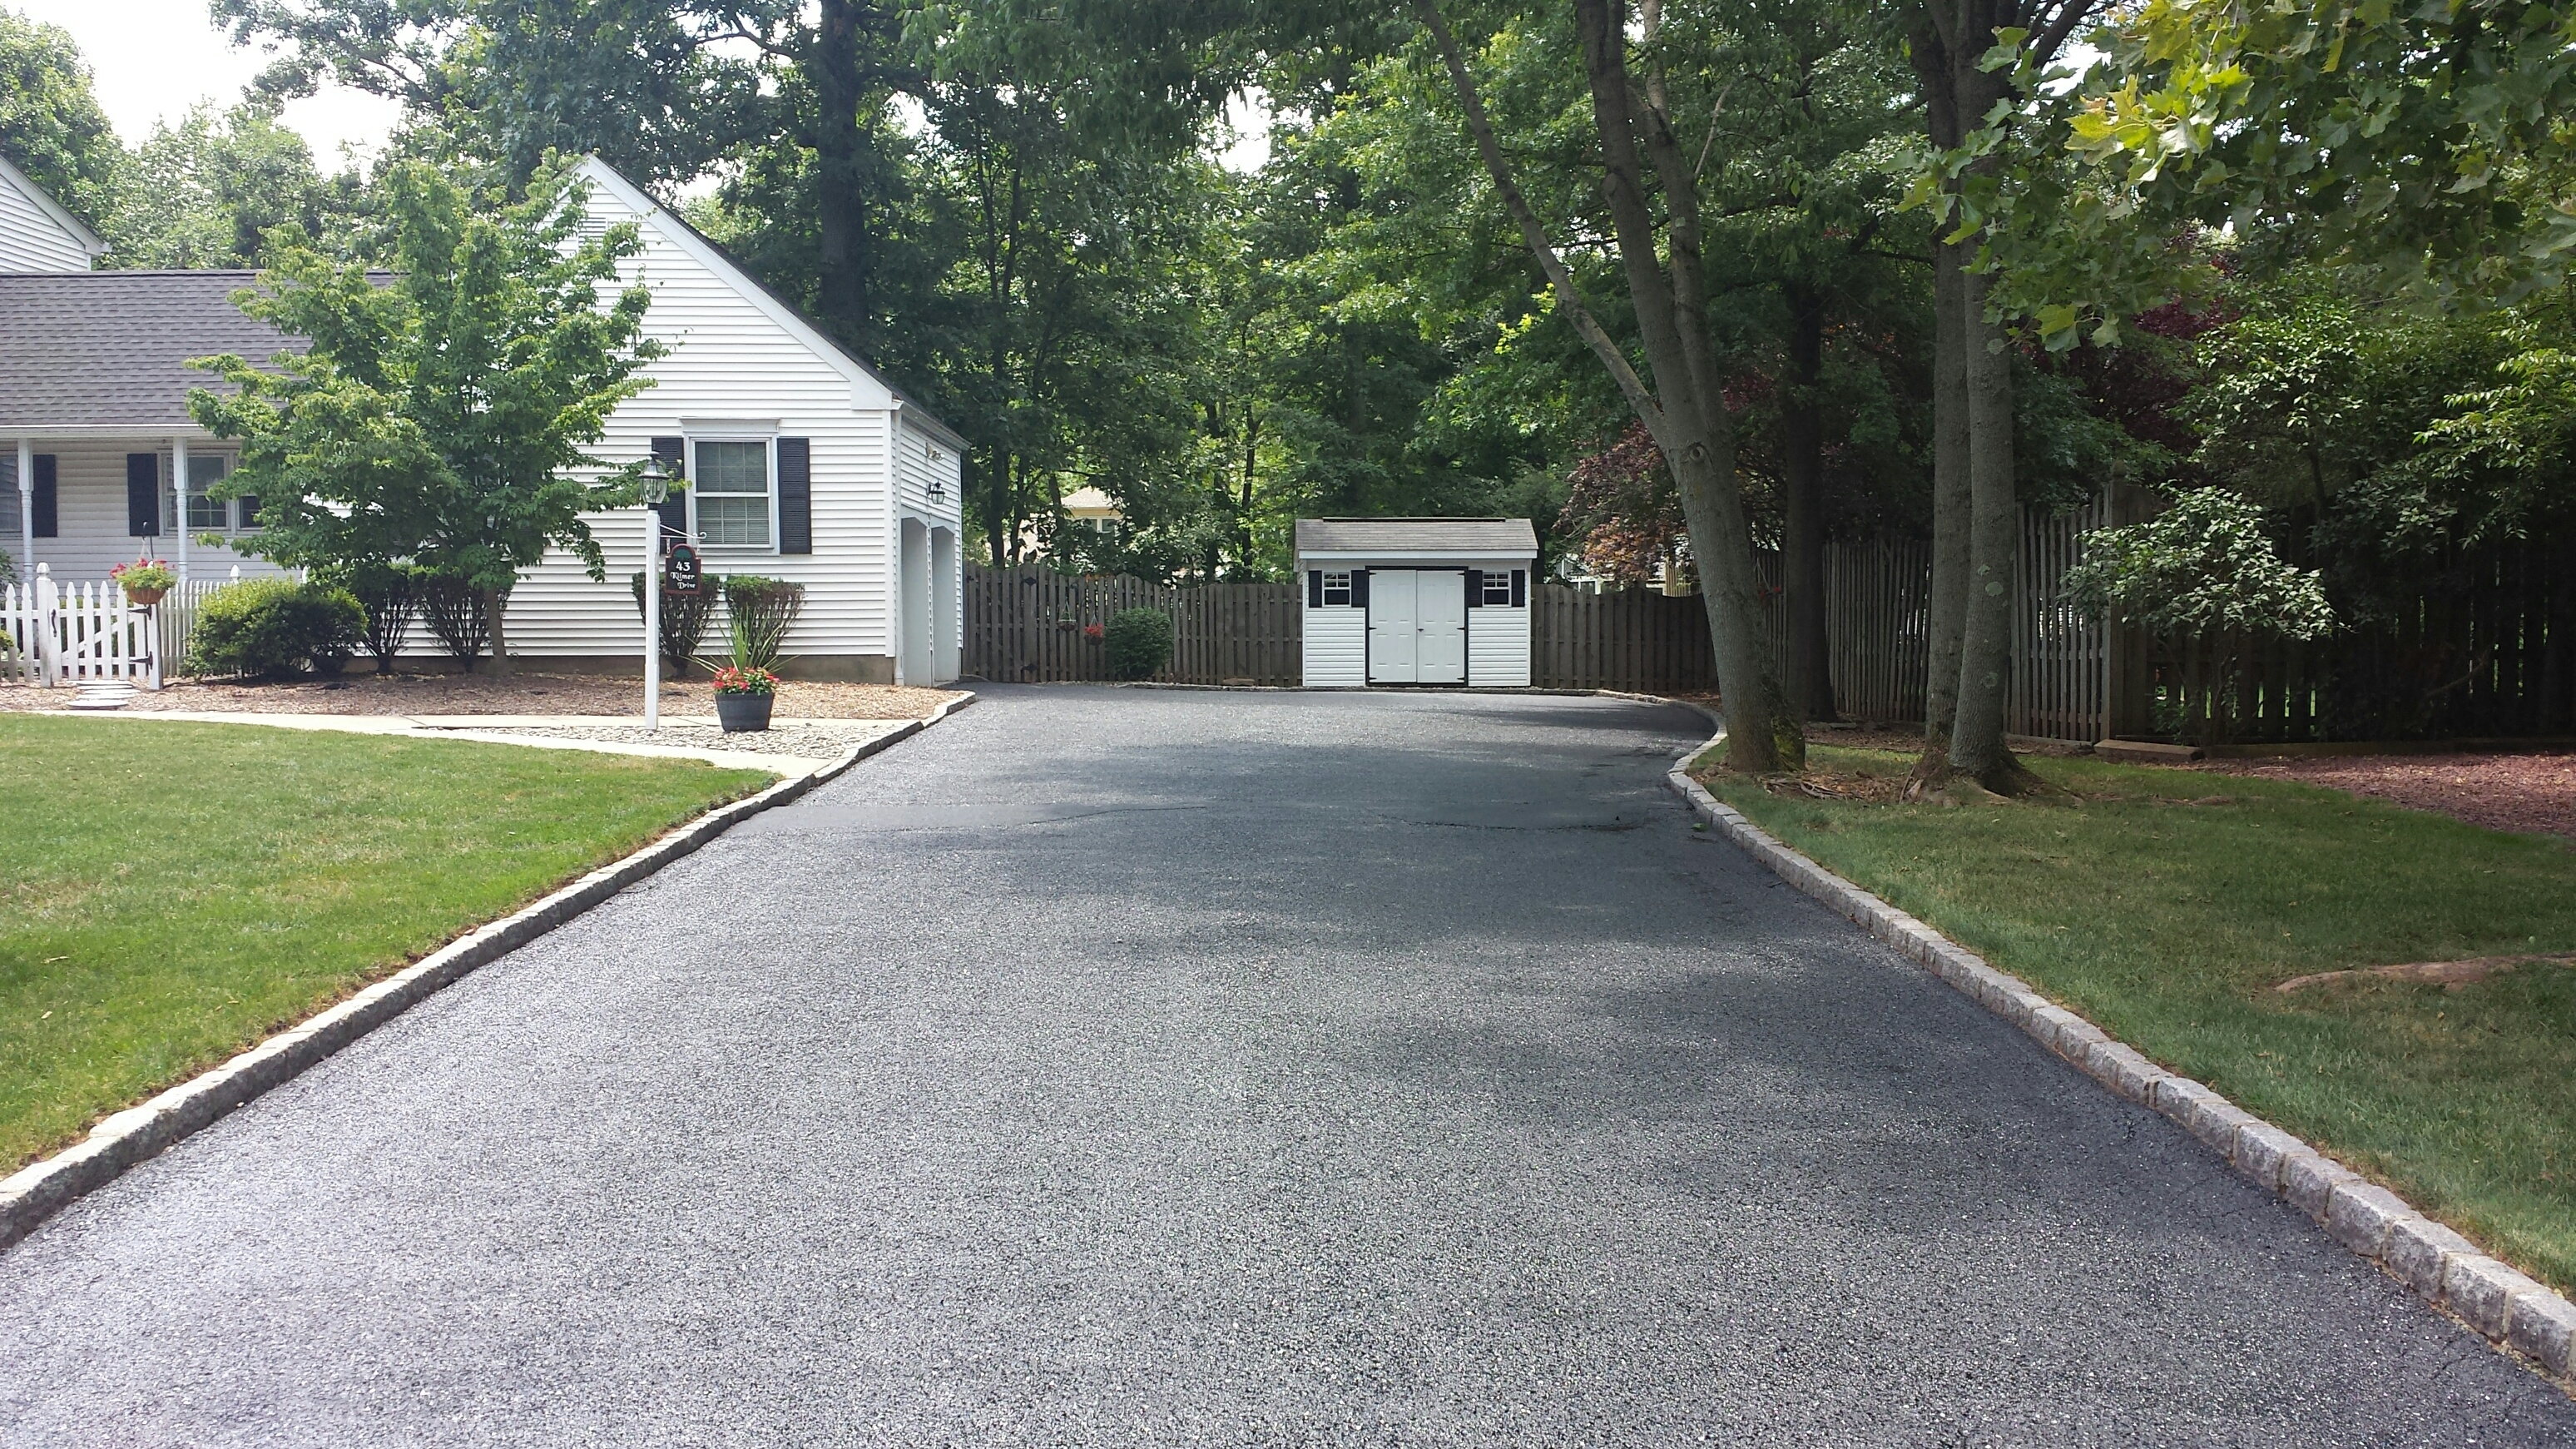 2018 asphalt paving costs install resurface replace prices photo courtesy of productive asphalt paving in ringoes nj solutioingenieria Gallery